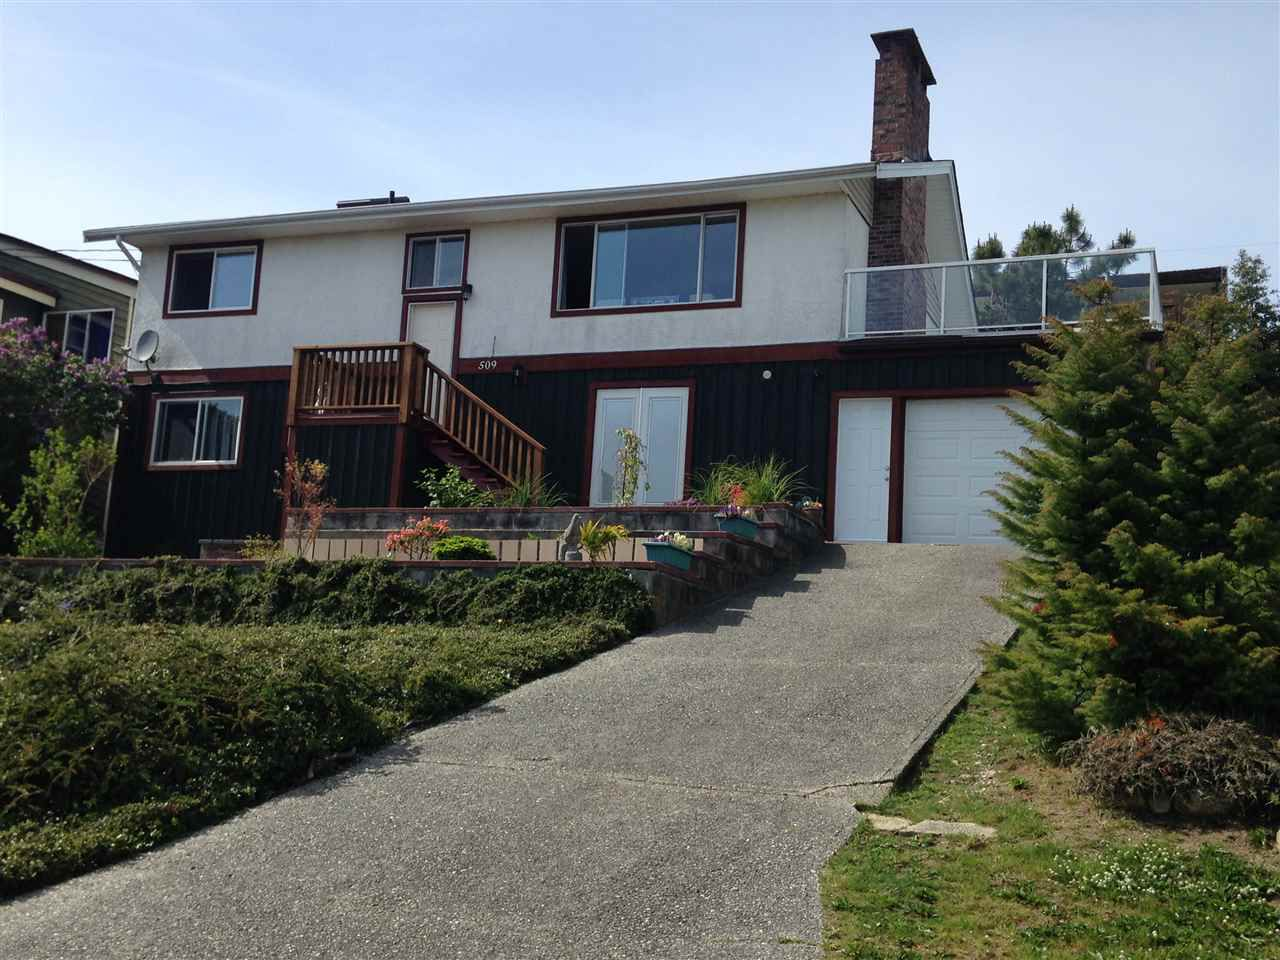 Photo 1: Photos: 509 SARGENT Road in Gibsons: Gibsons & Area House for sale (Sunshine Coast)  : MLS®# R2059676